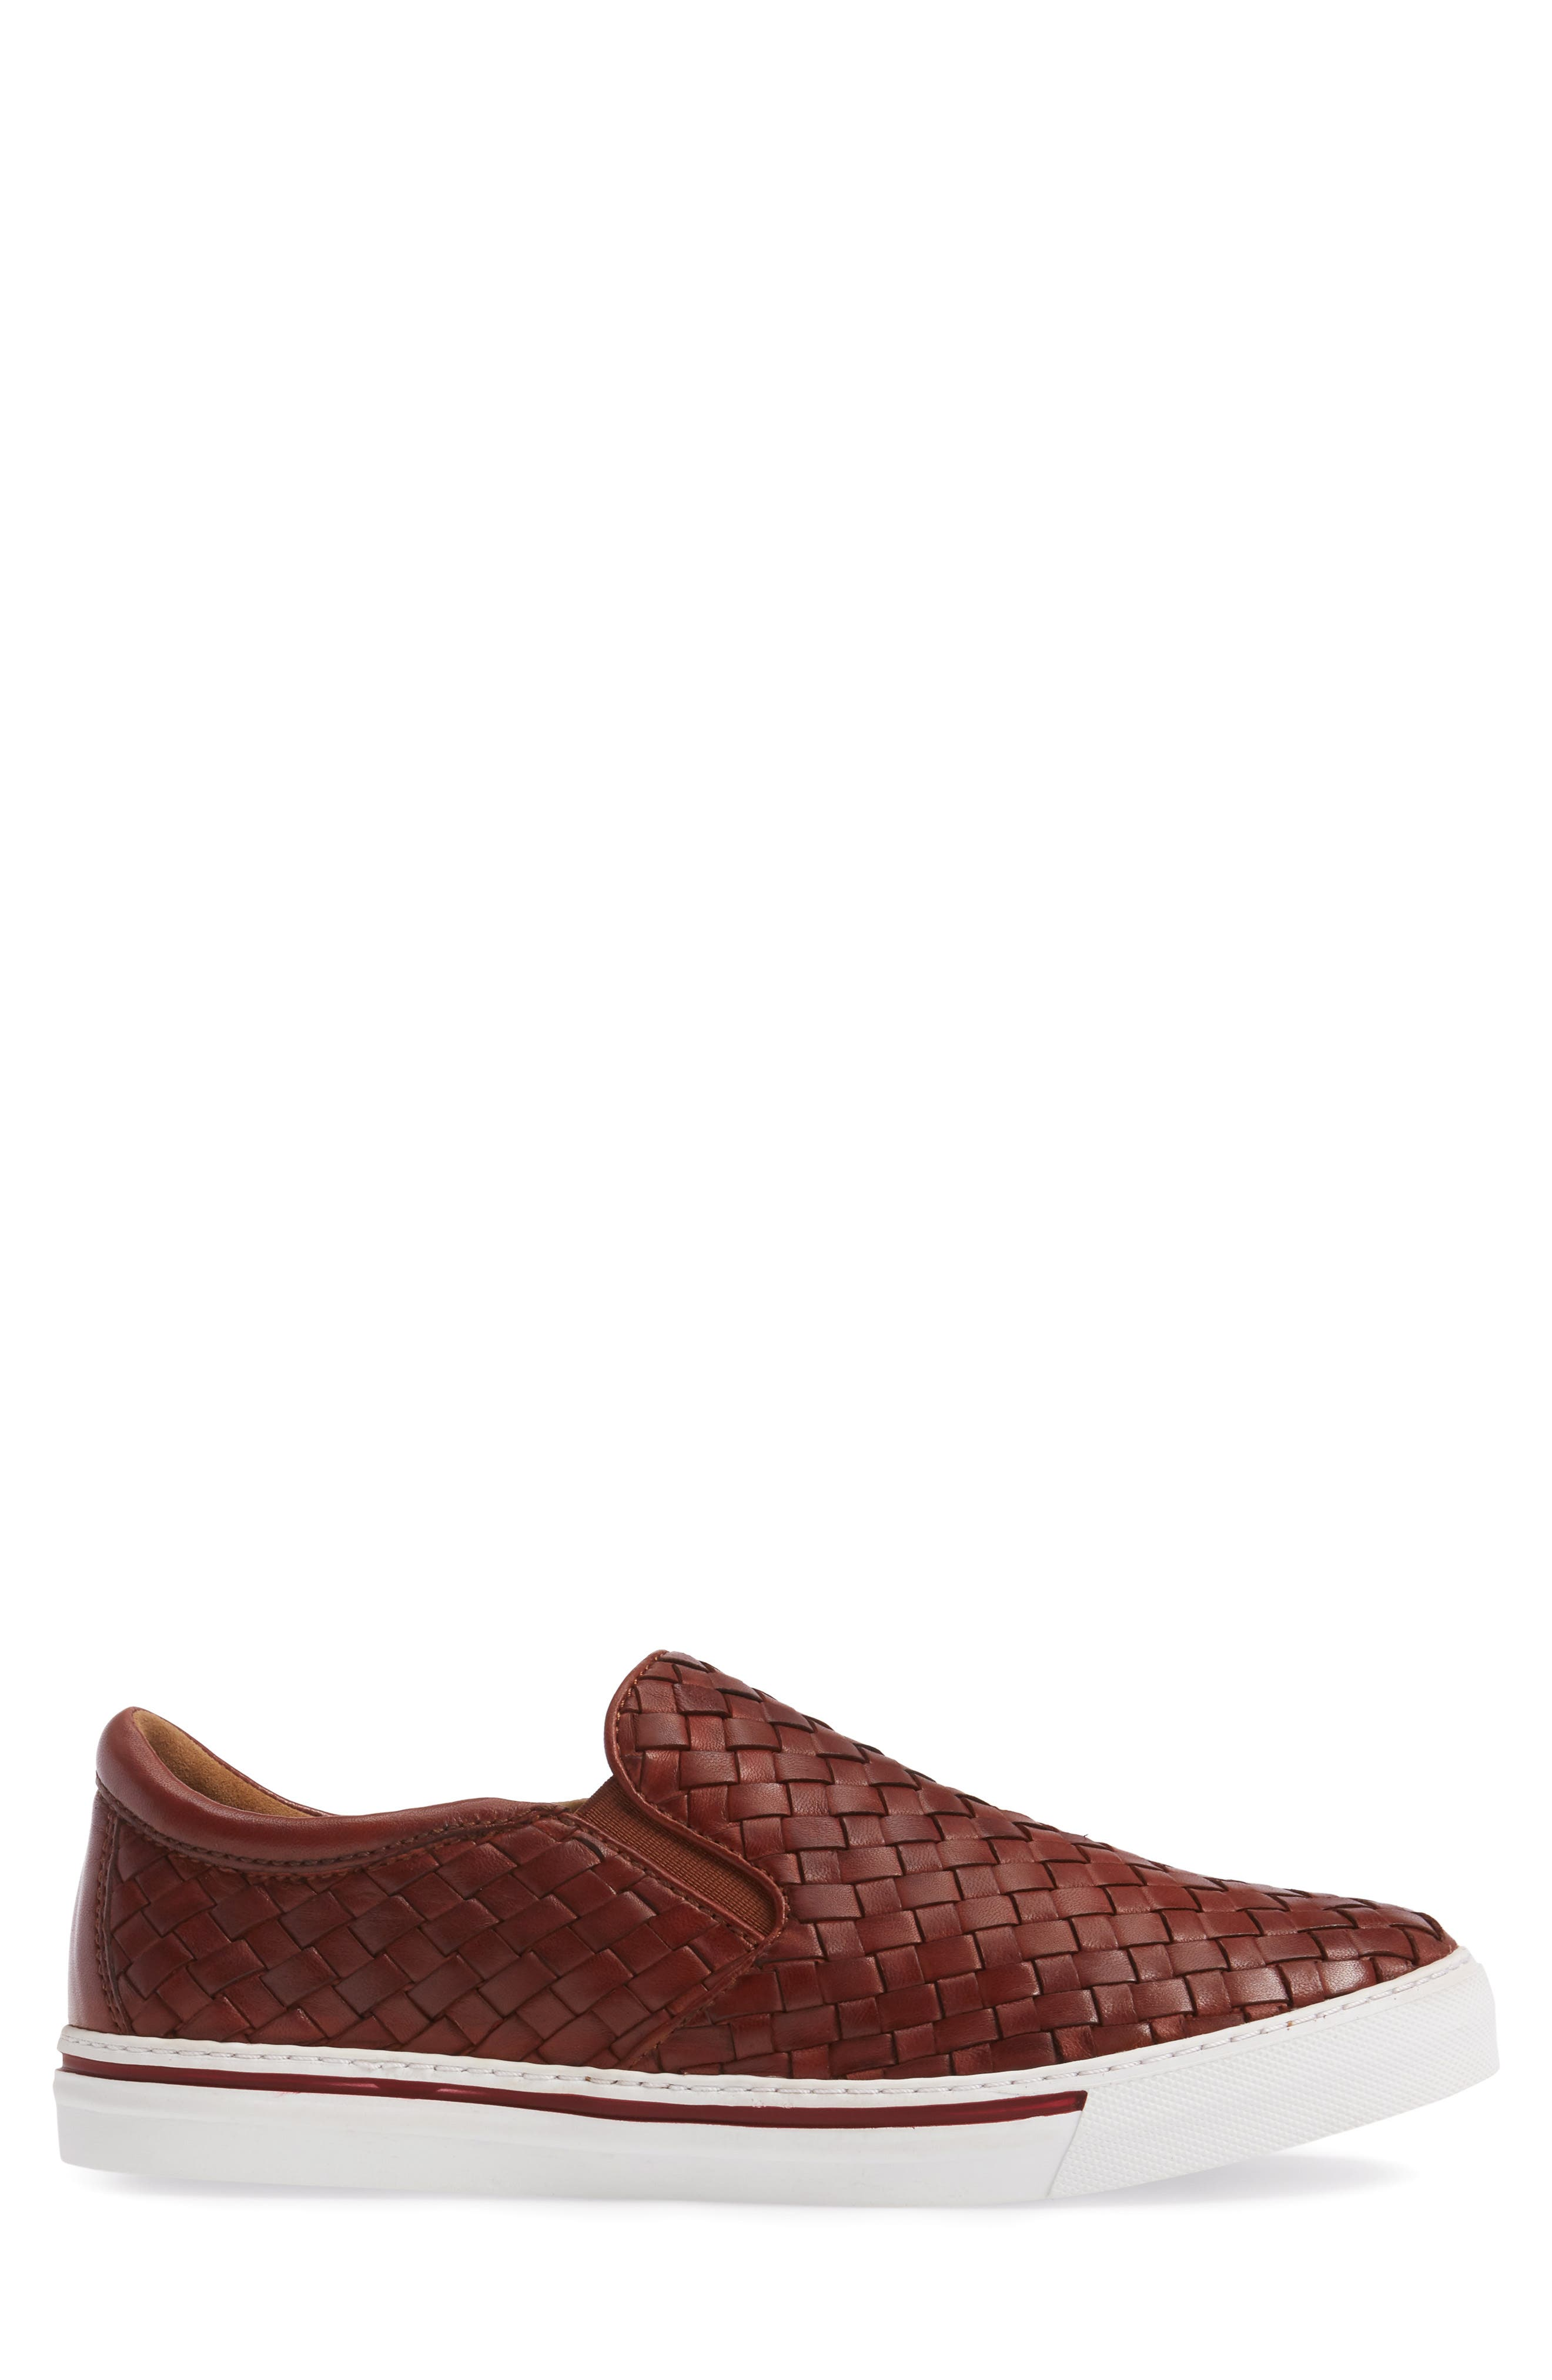 James Slip-On,                             Alternate thumbnail 3, color,                             Dark Luggage Leather